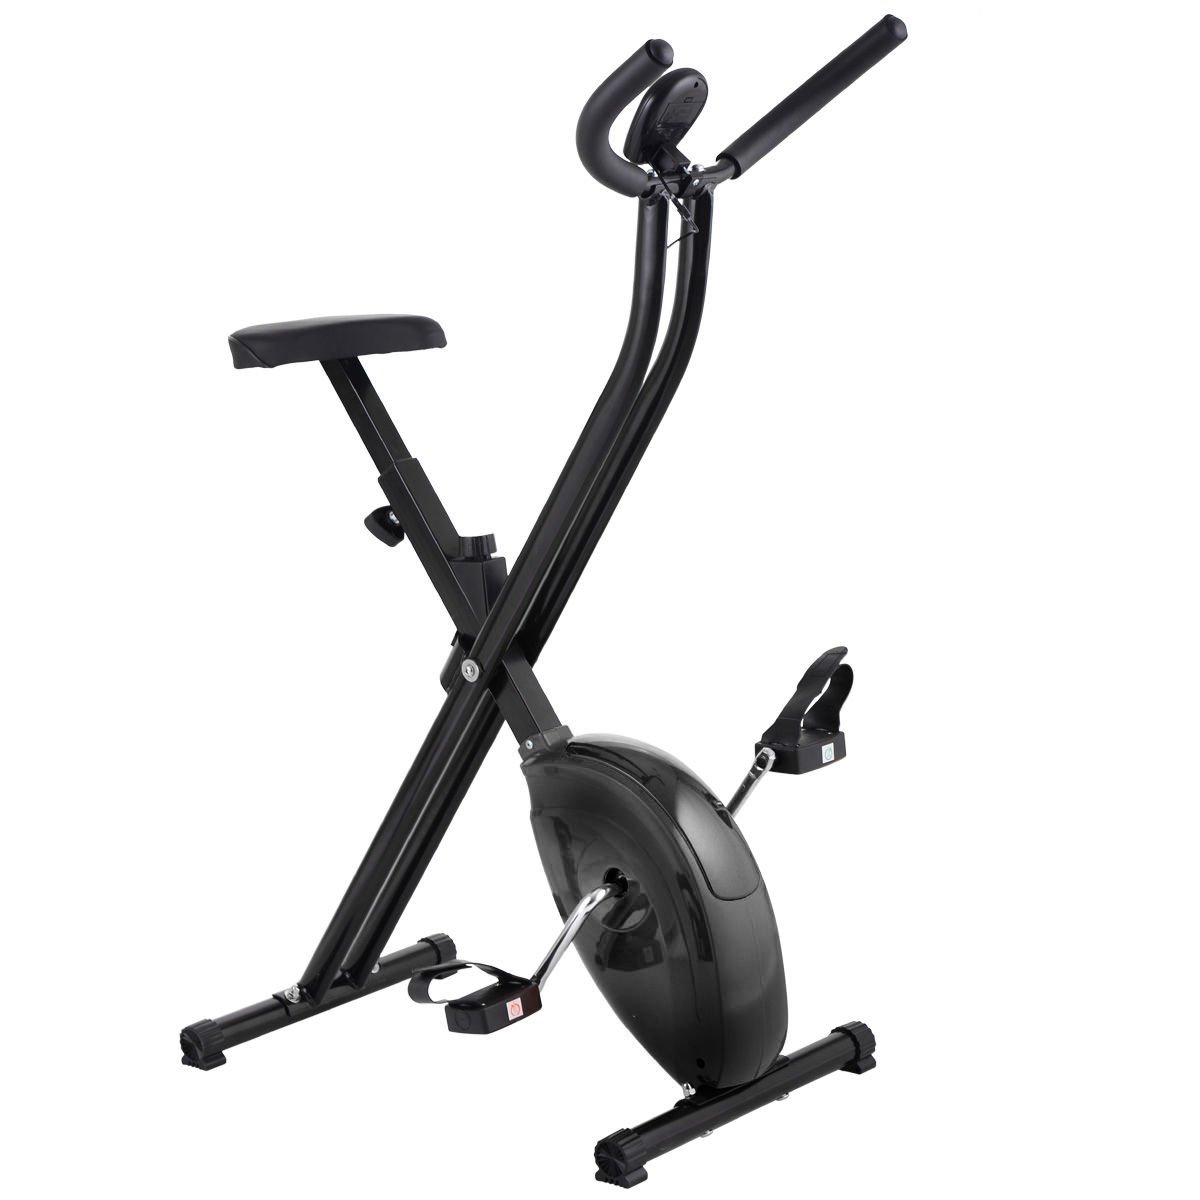 Folding Exercise Bike Home Magnetic Trainer Fitness Stationary Machine New - Black by Eight24hours